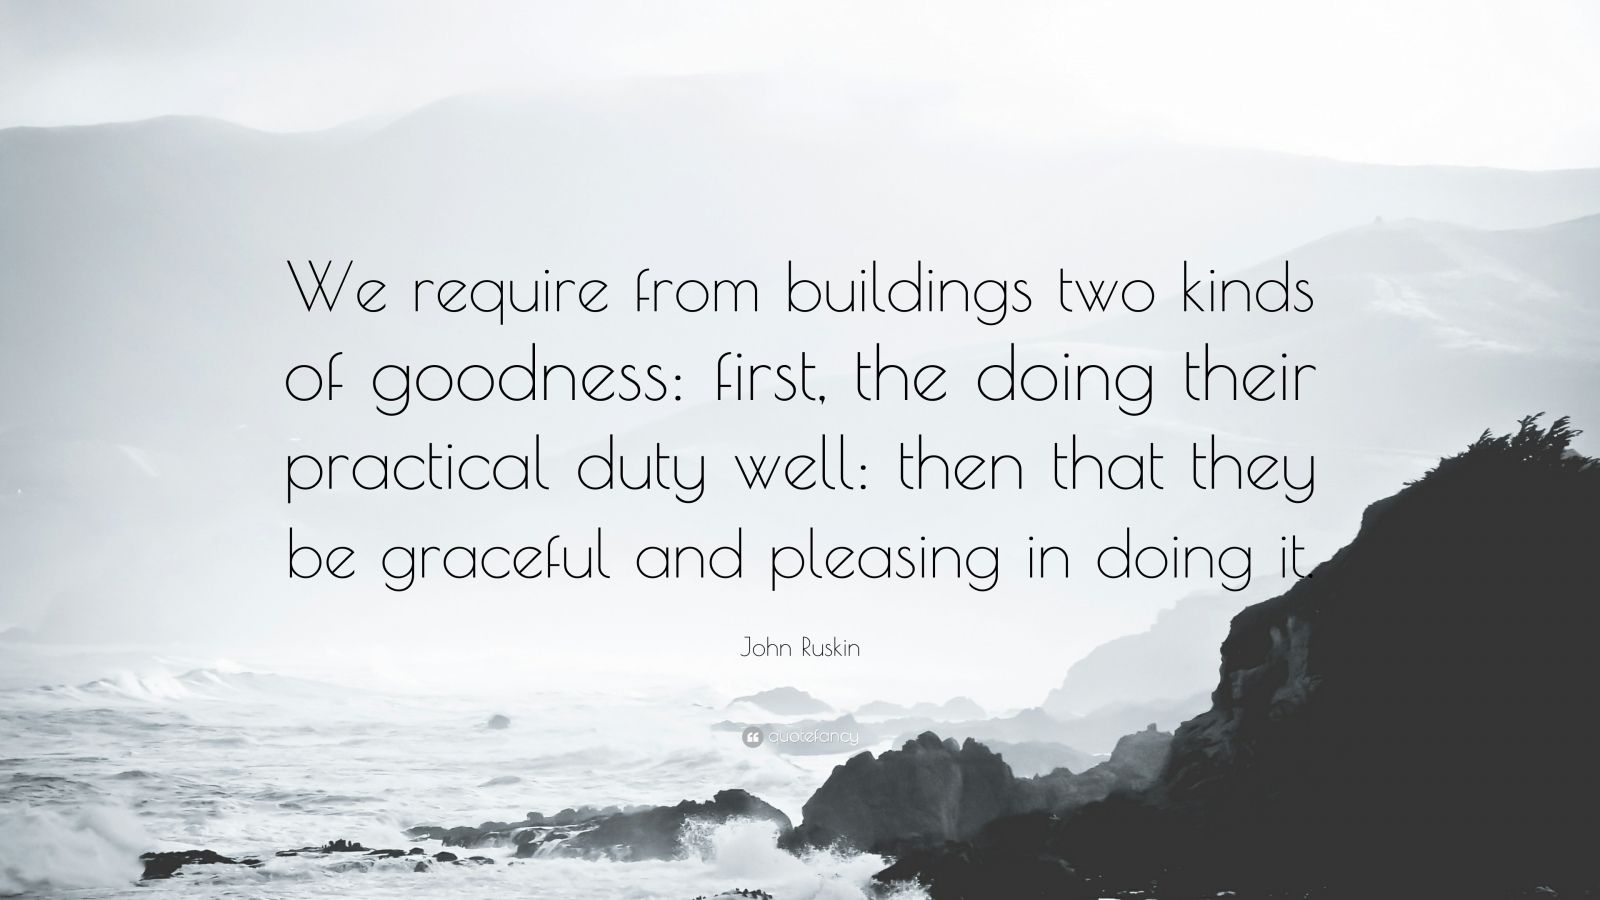 """John Ruskin Quote: """"We require from buildings two kinds of goodness: first, the doing their practical duty well: then that they be graceful and pleasing in doing it."""""""